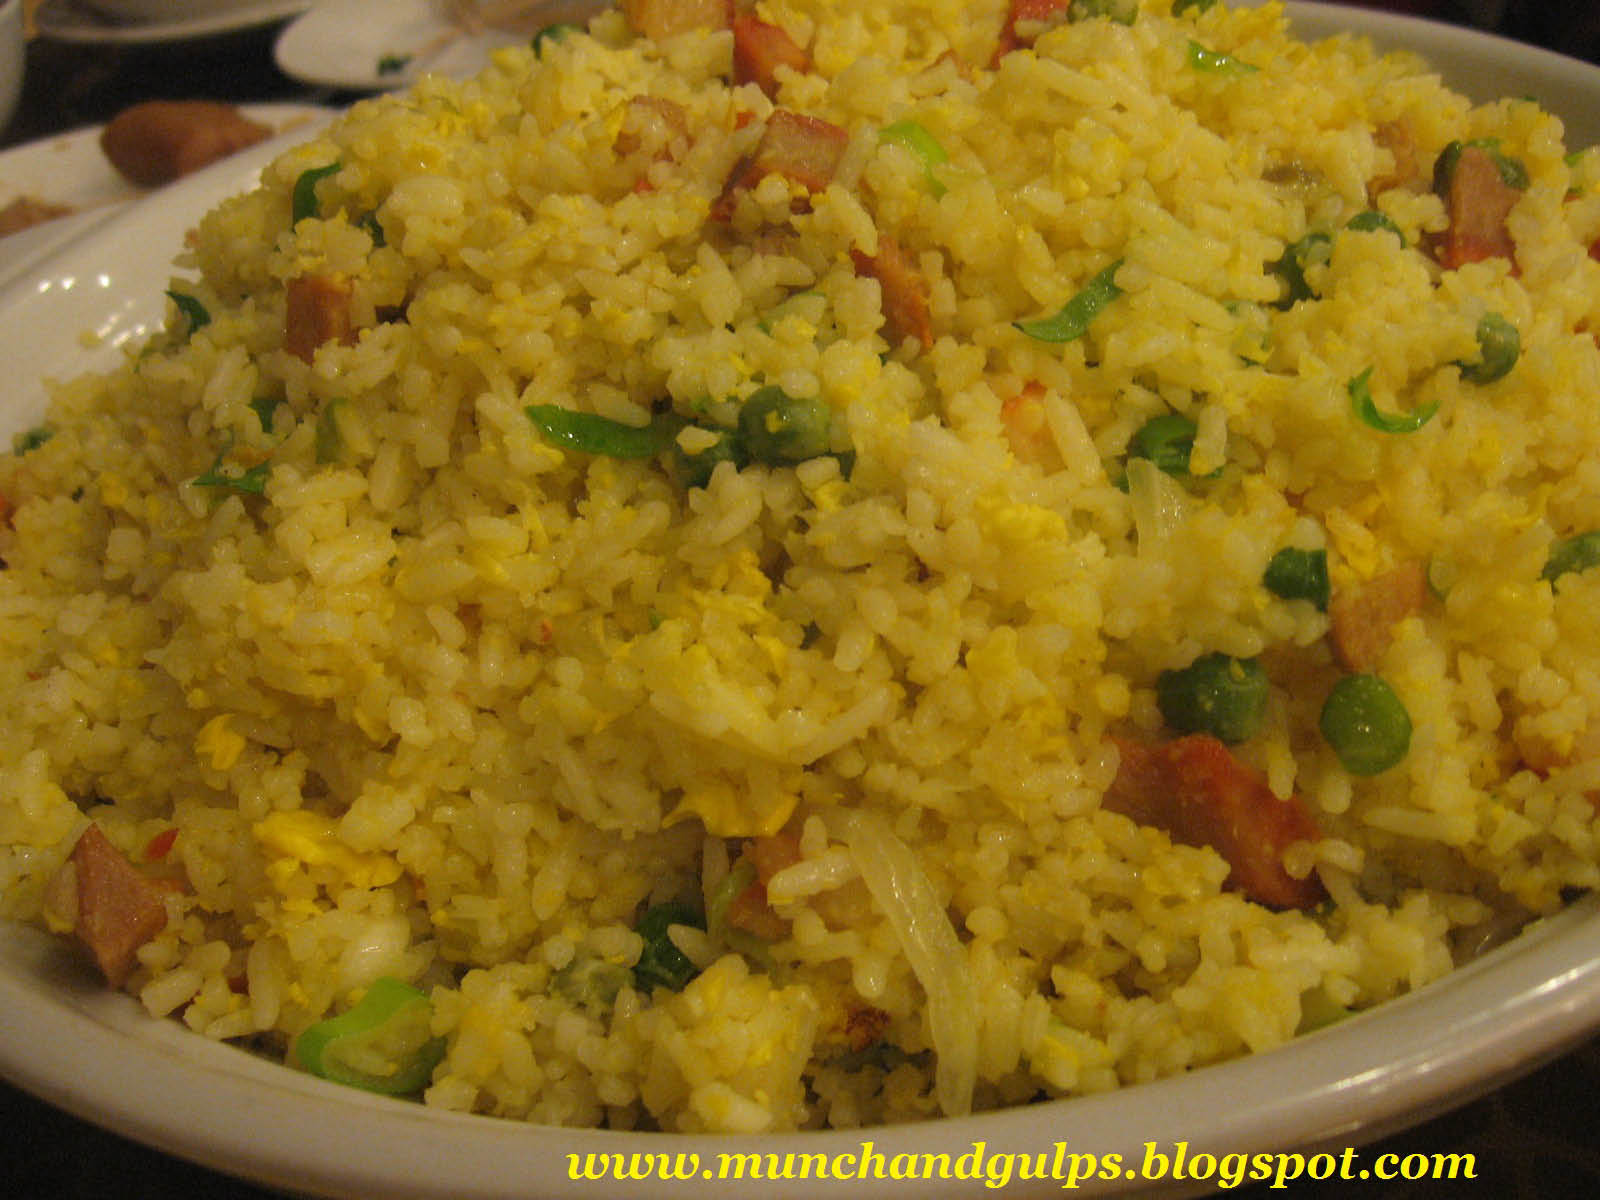 Flavored rice to compliment any meal